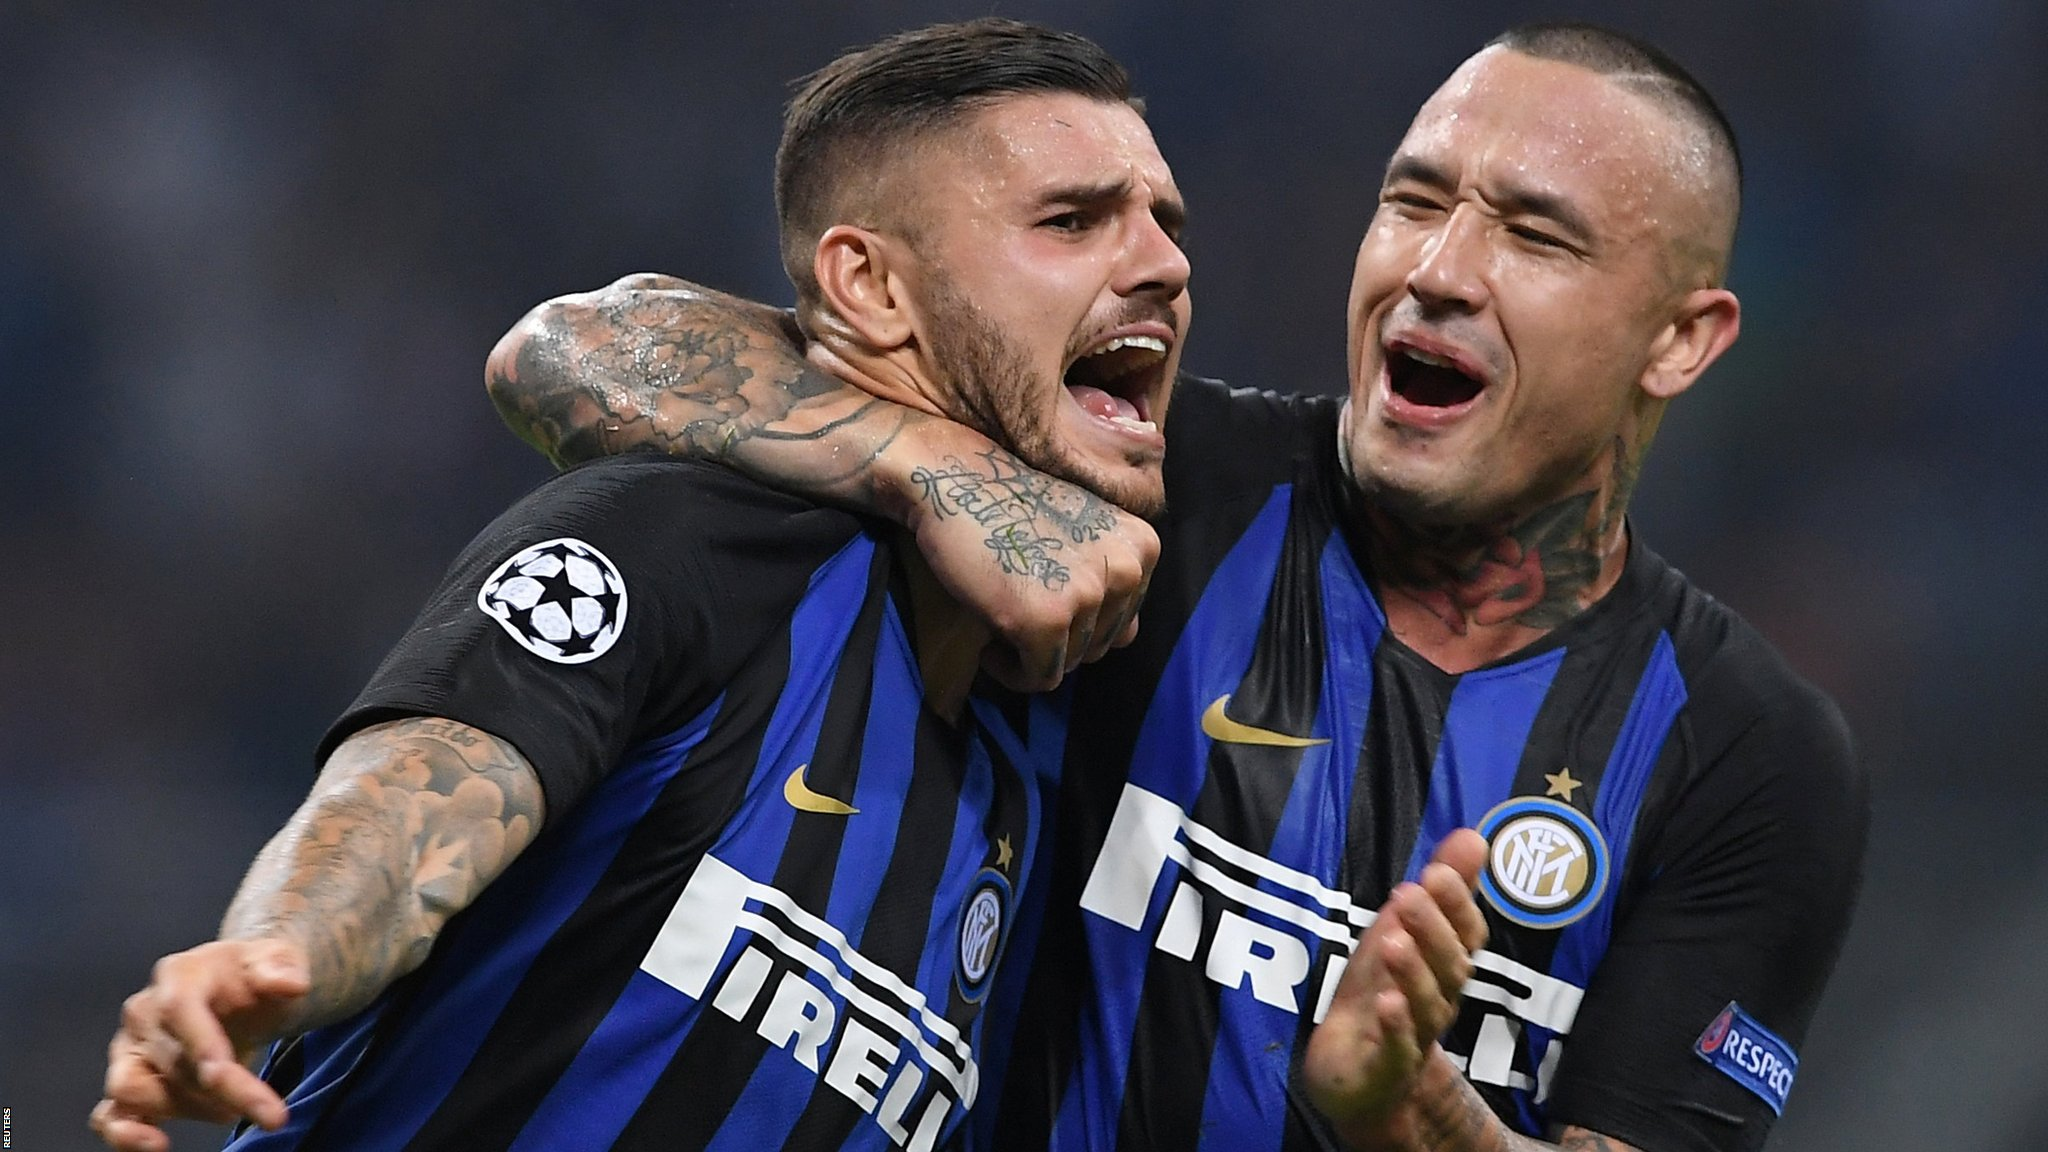 Inter Milan 2-1 Tottenham Hotspur: Inter stun Spurs with late fightback